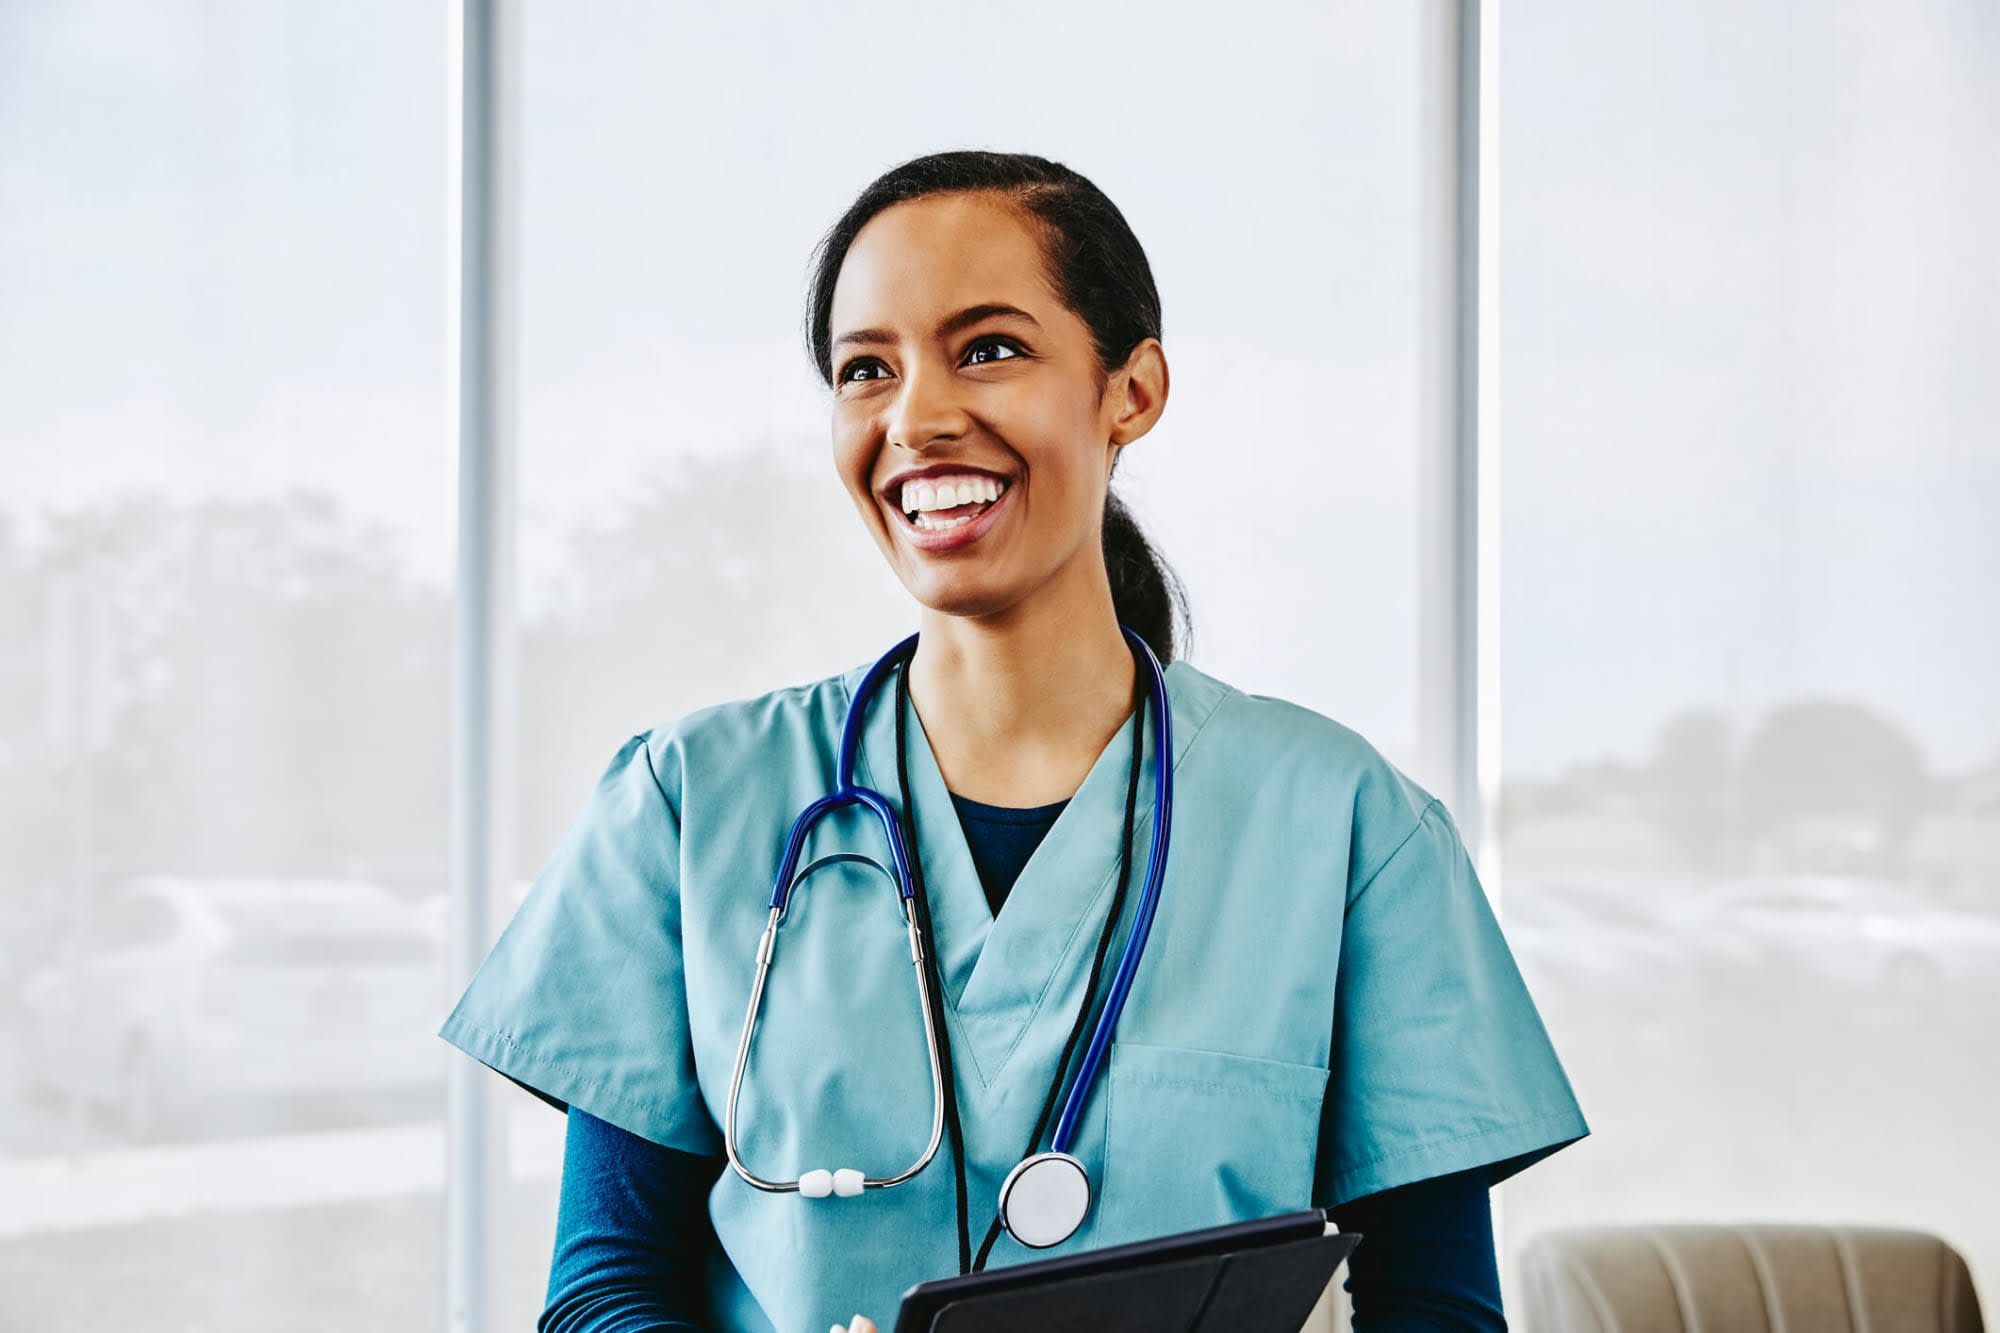 Top 10 Advantages of a BSN Degree